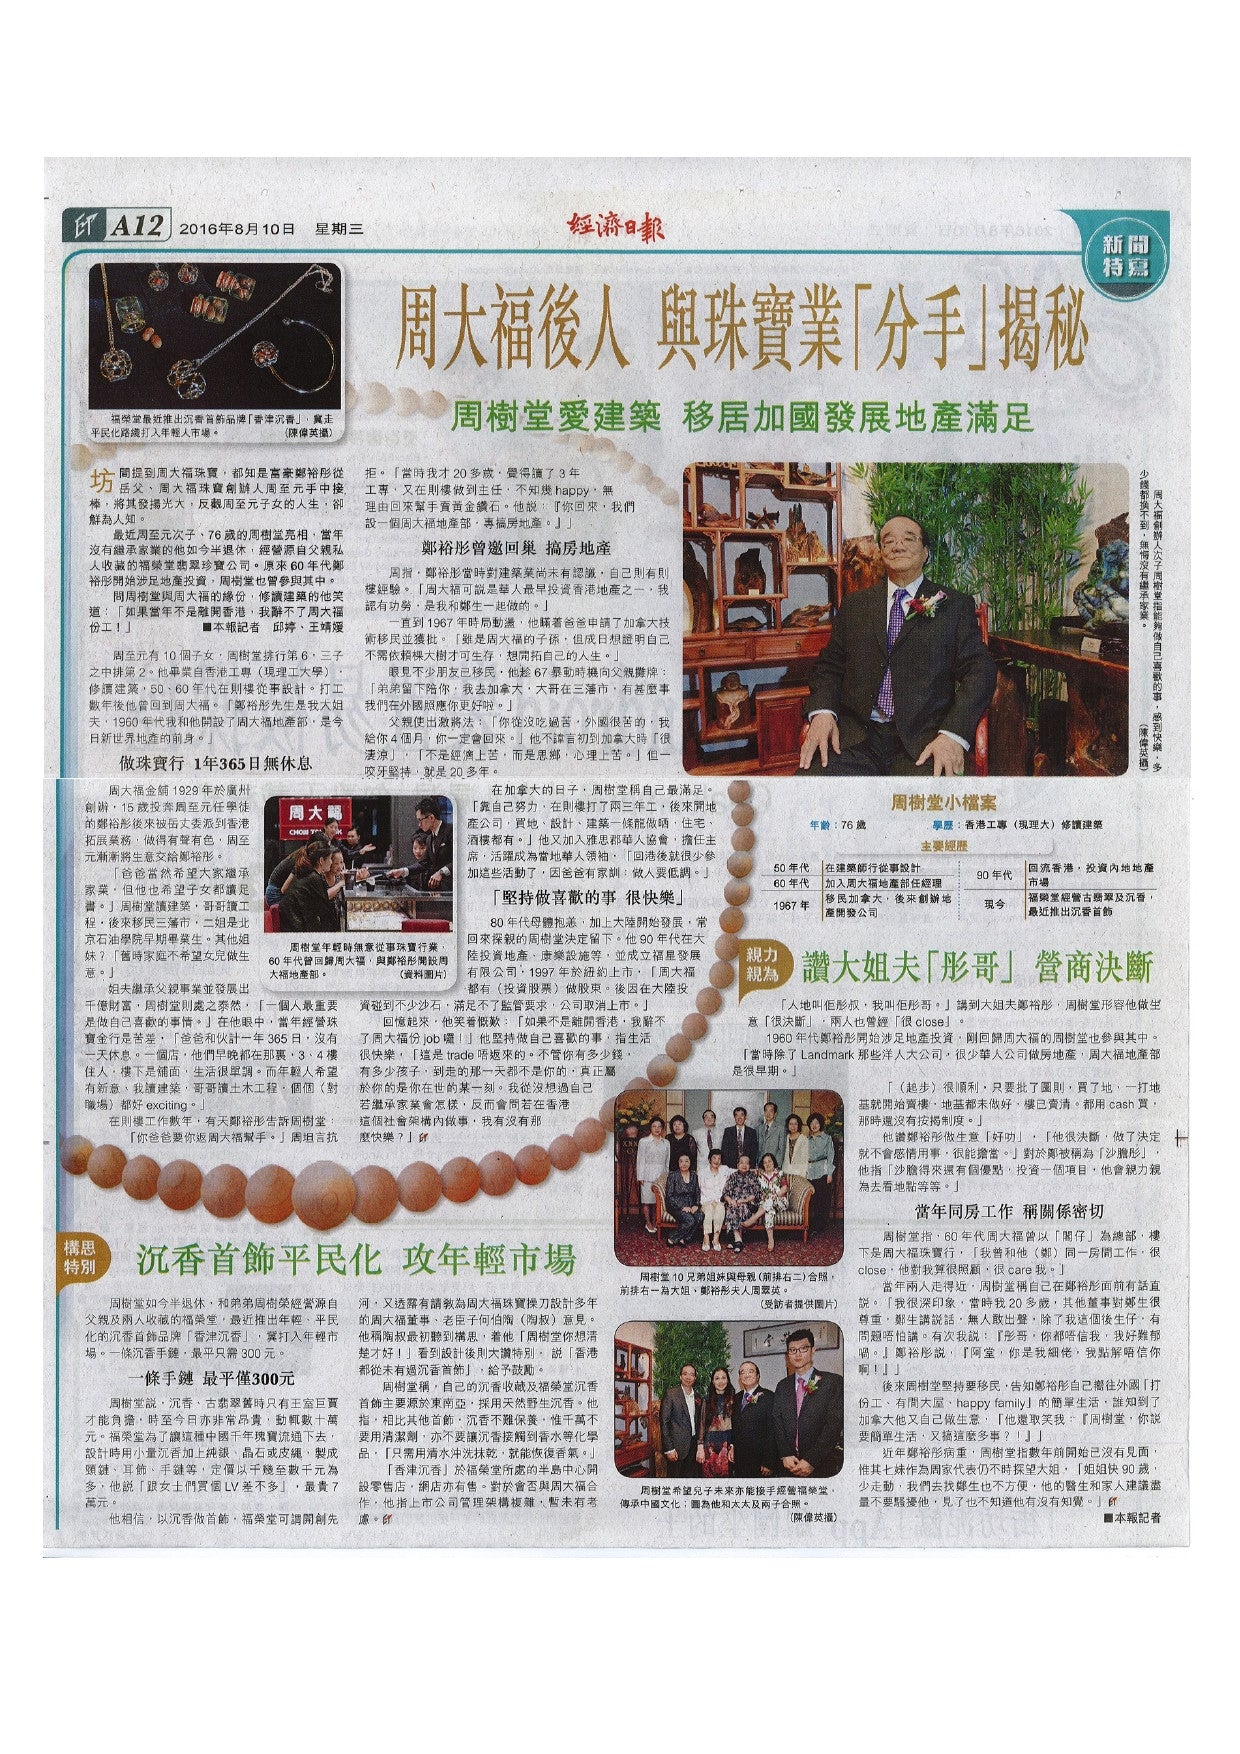 Agar Creations in the Hong Kong News - Hong Kong Economic Times